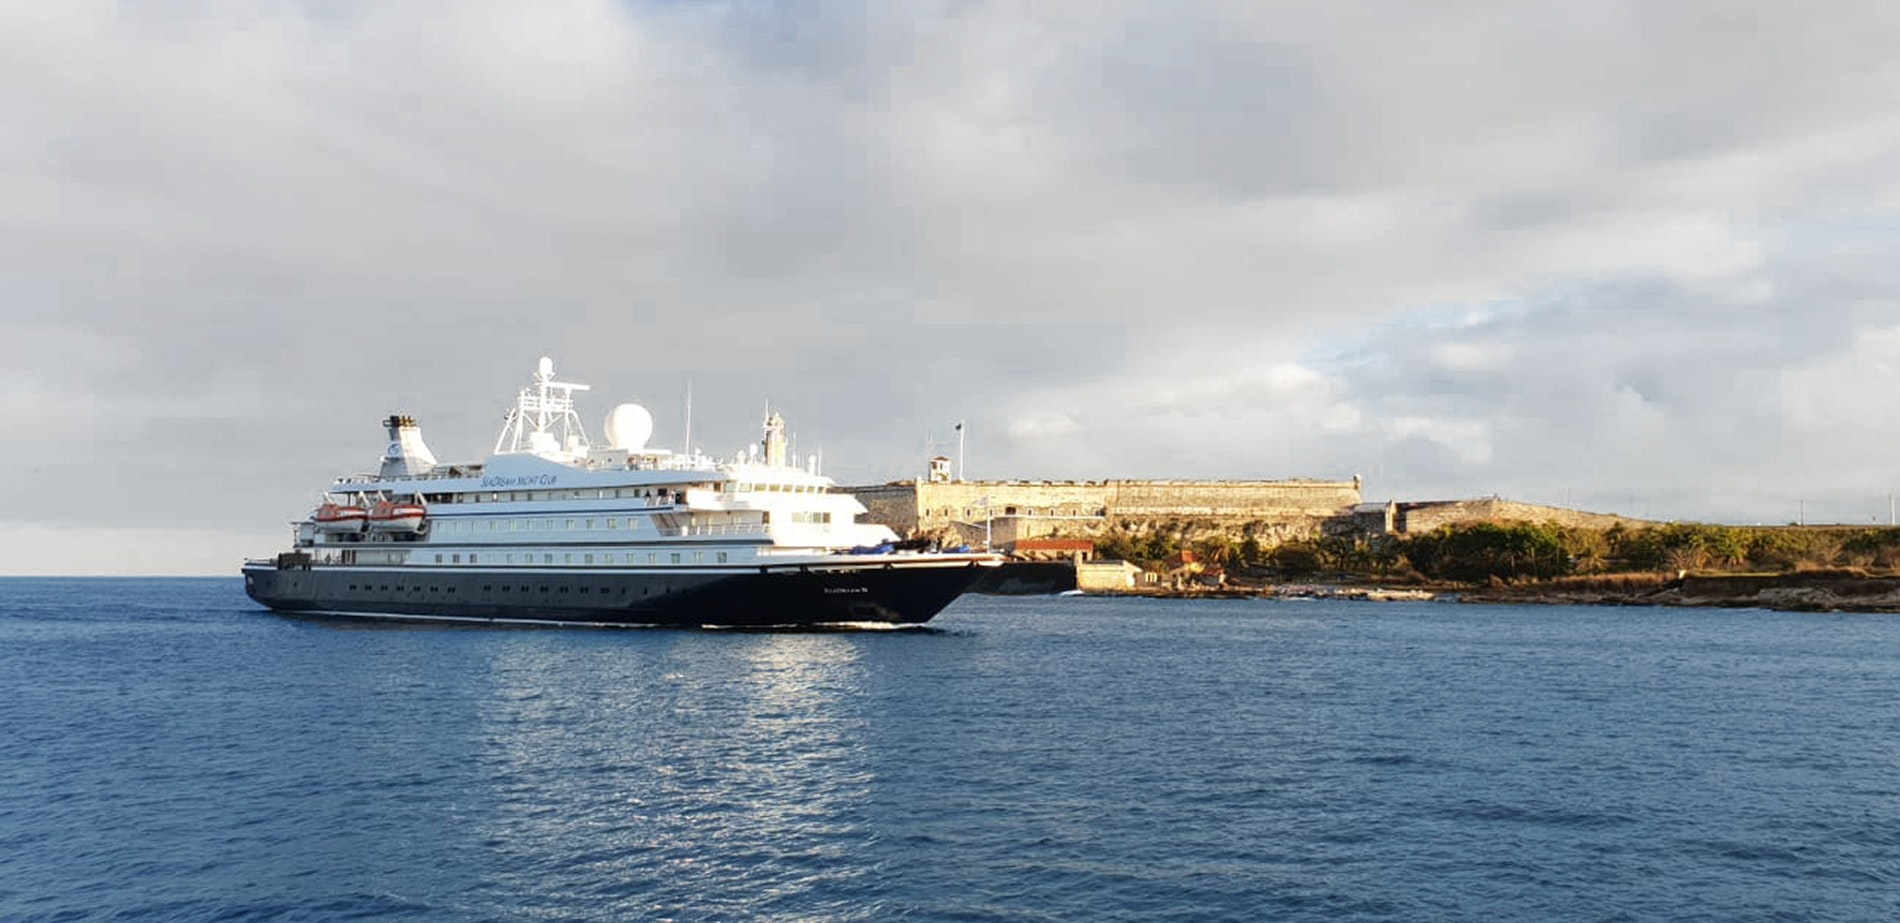 Upscale cruise line SeaDream started sailing to Cuba in 2019, with immersive itineraries on voyages between Havana and Cienfuegos.